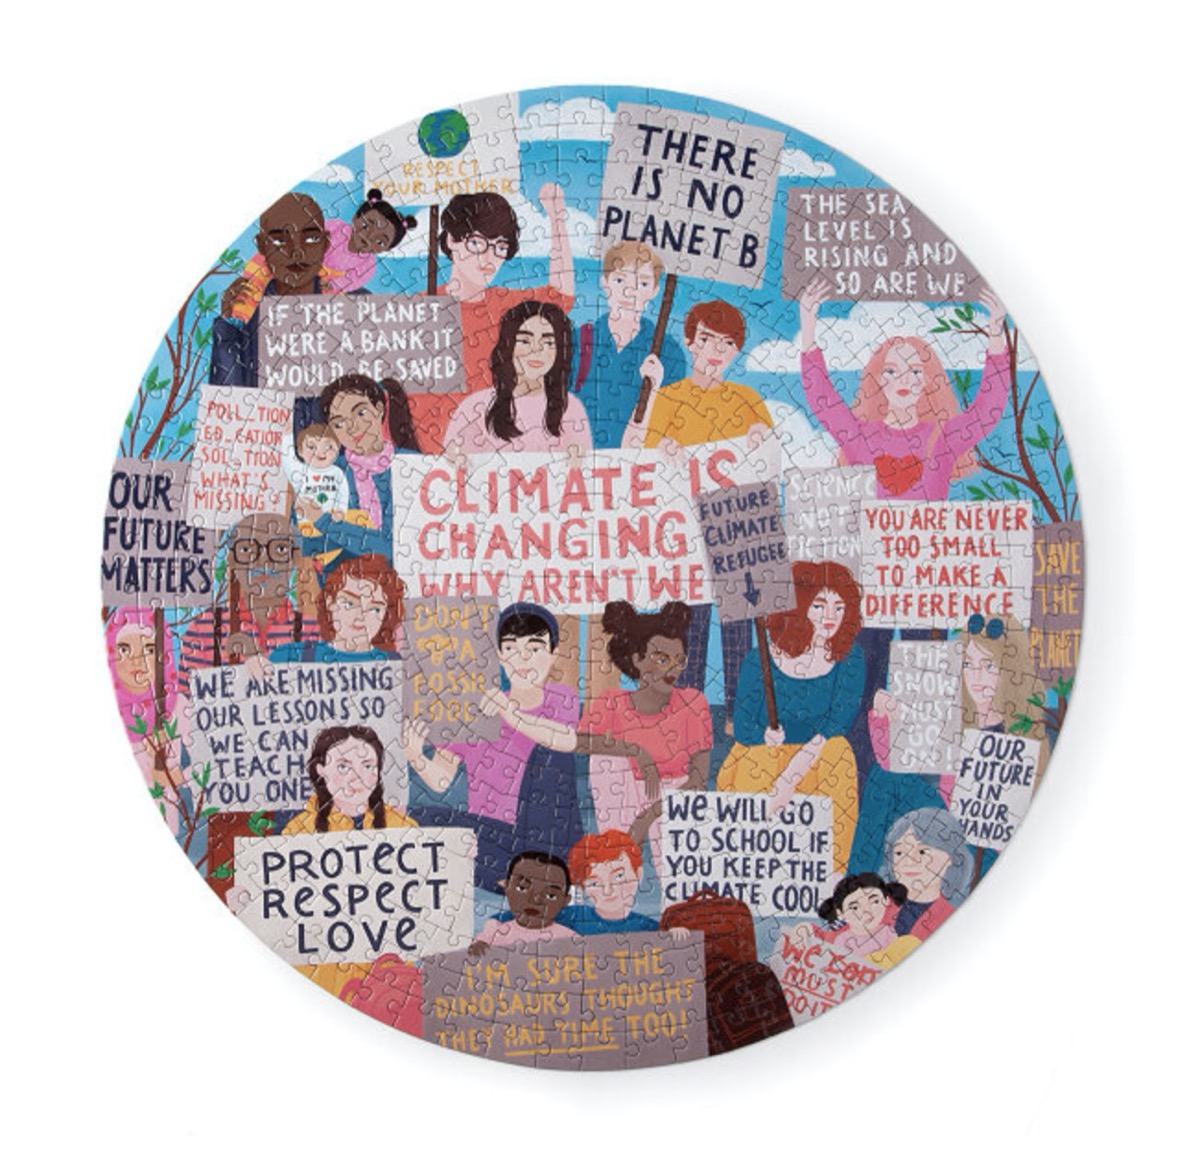 climate action puzzle with images of people holding up protest signs